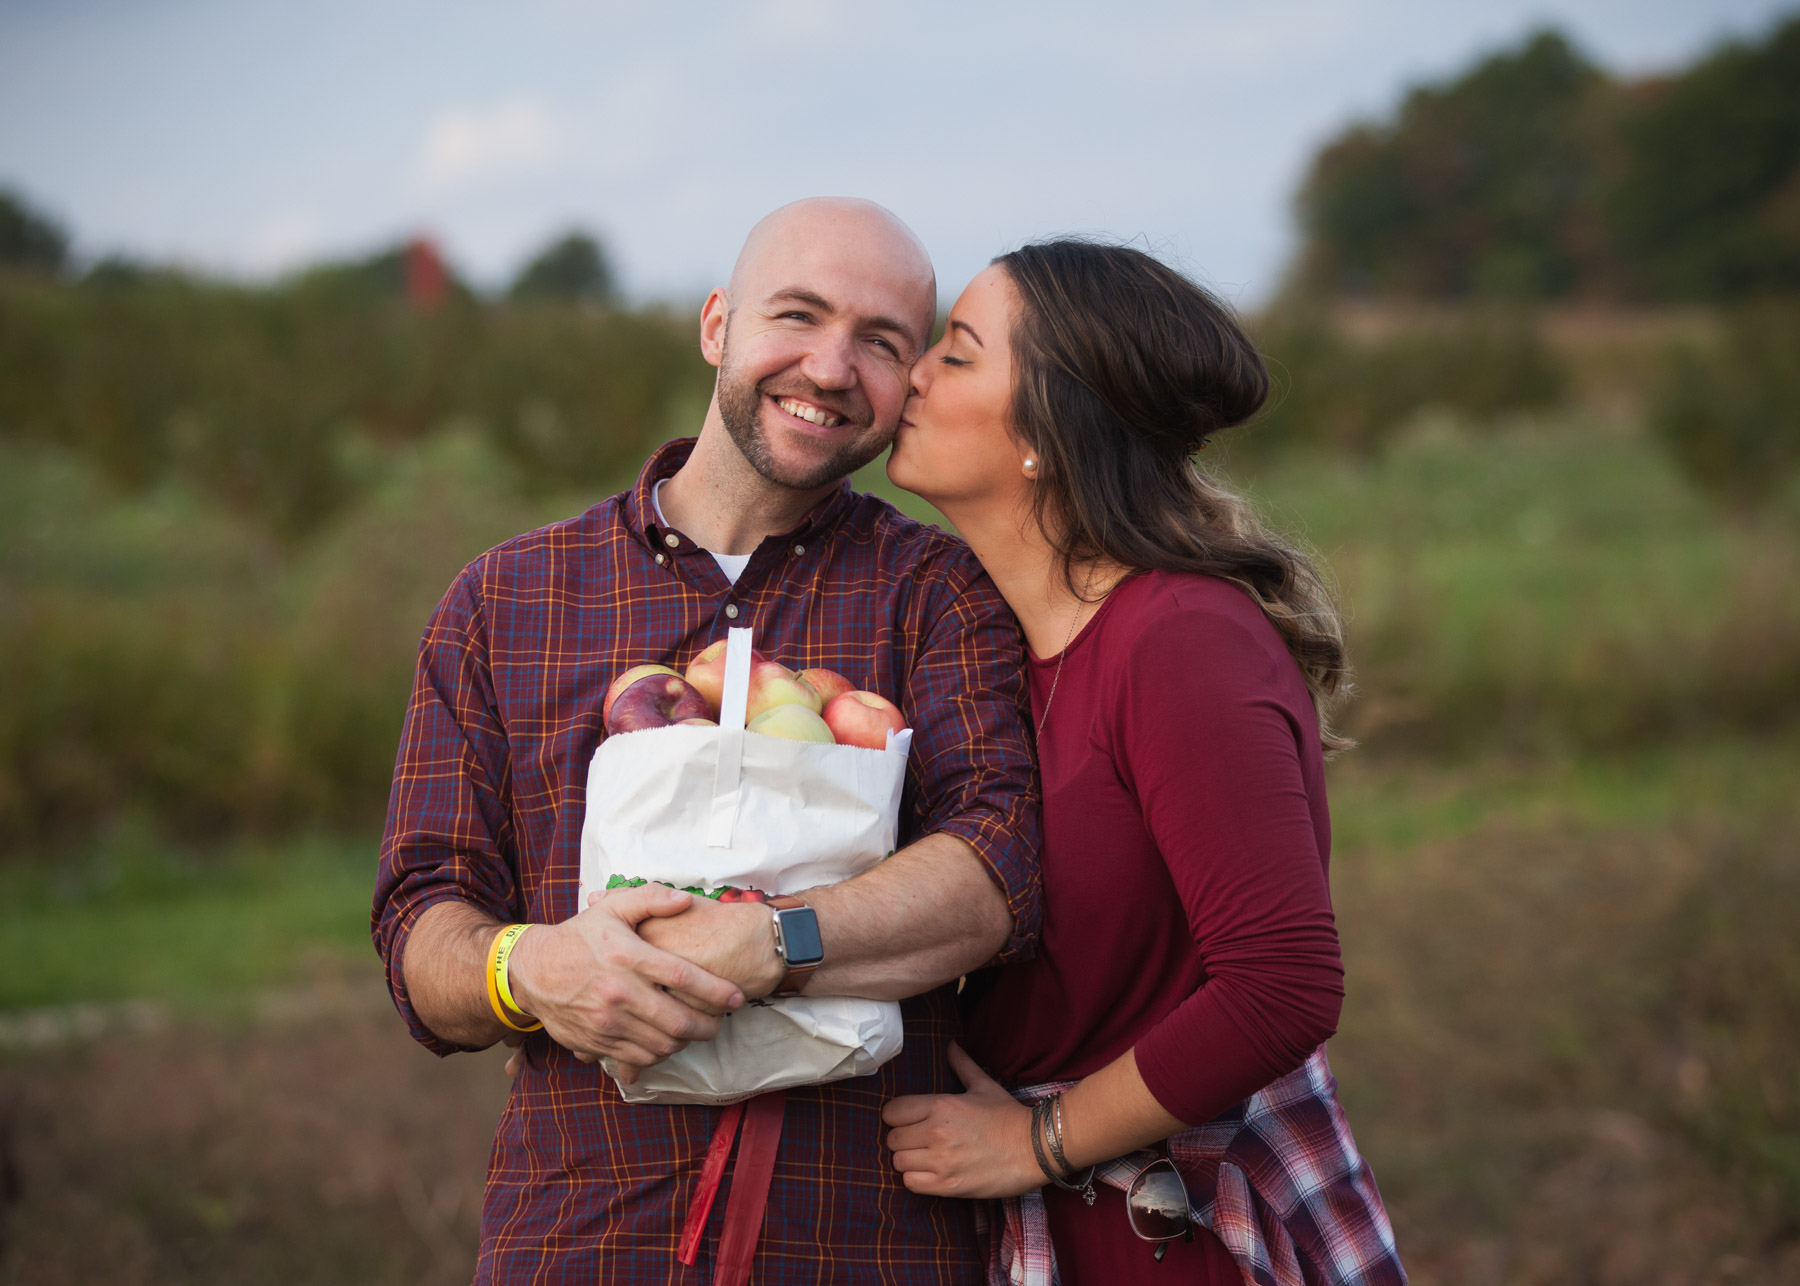 Woman with dark hair, wearing a burgundy shirt, kisses her boyfriend on the cheek while he smiles and holds a bag of apples.